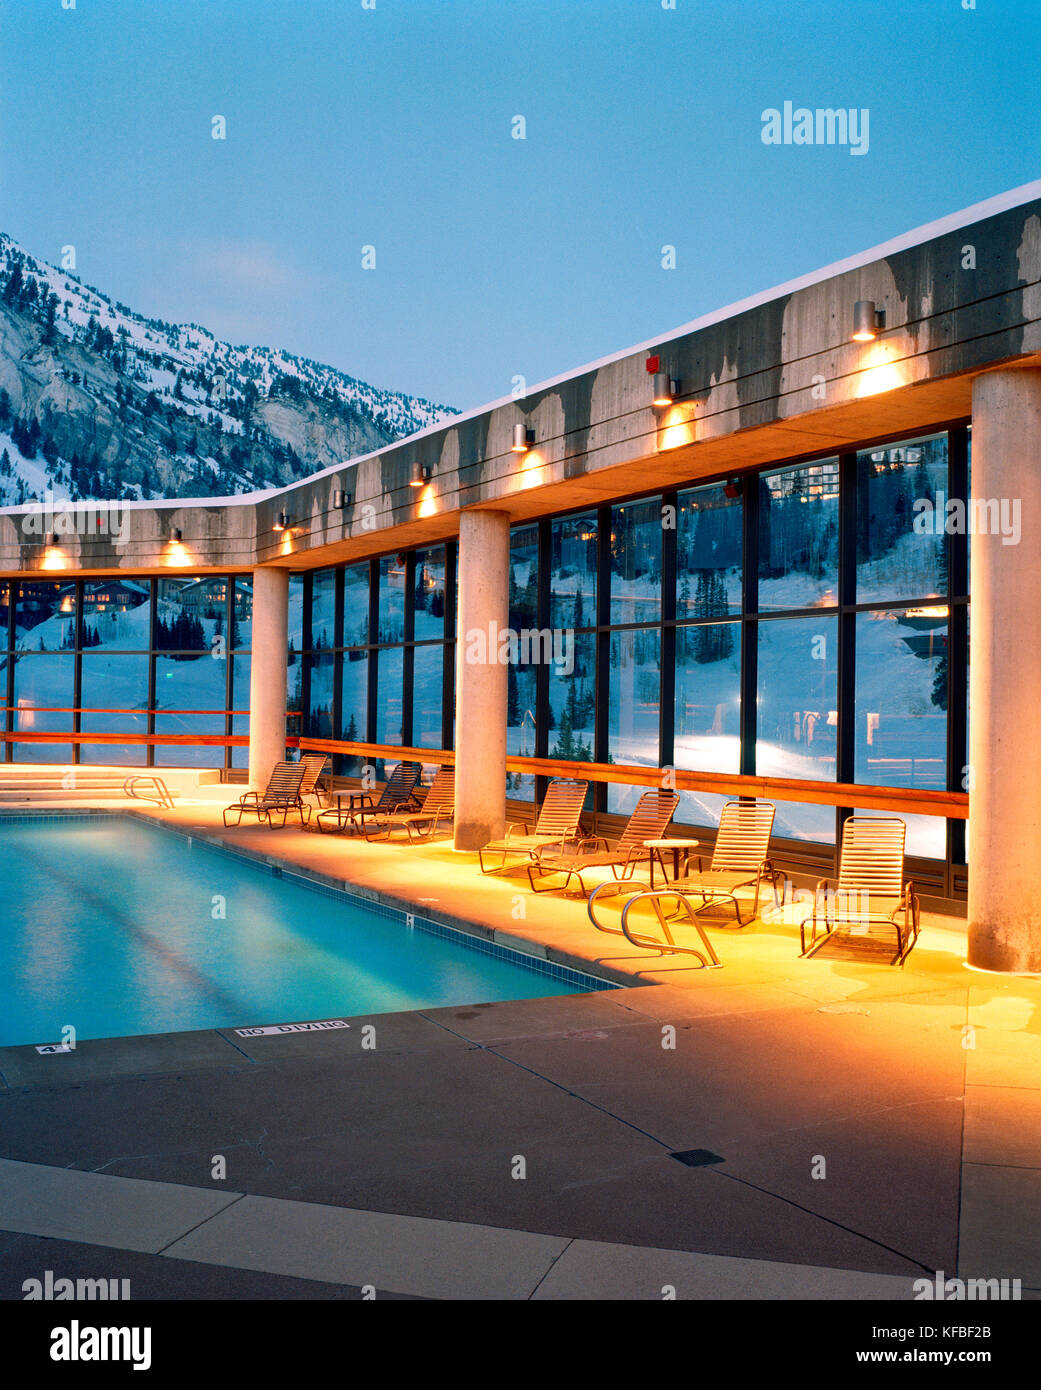 USA, Utah, deck chairs by the outdoor swimming pool, The Cliff Hotel, Snowbird Ski Area - Stock Image